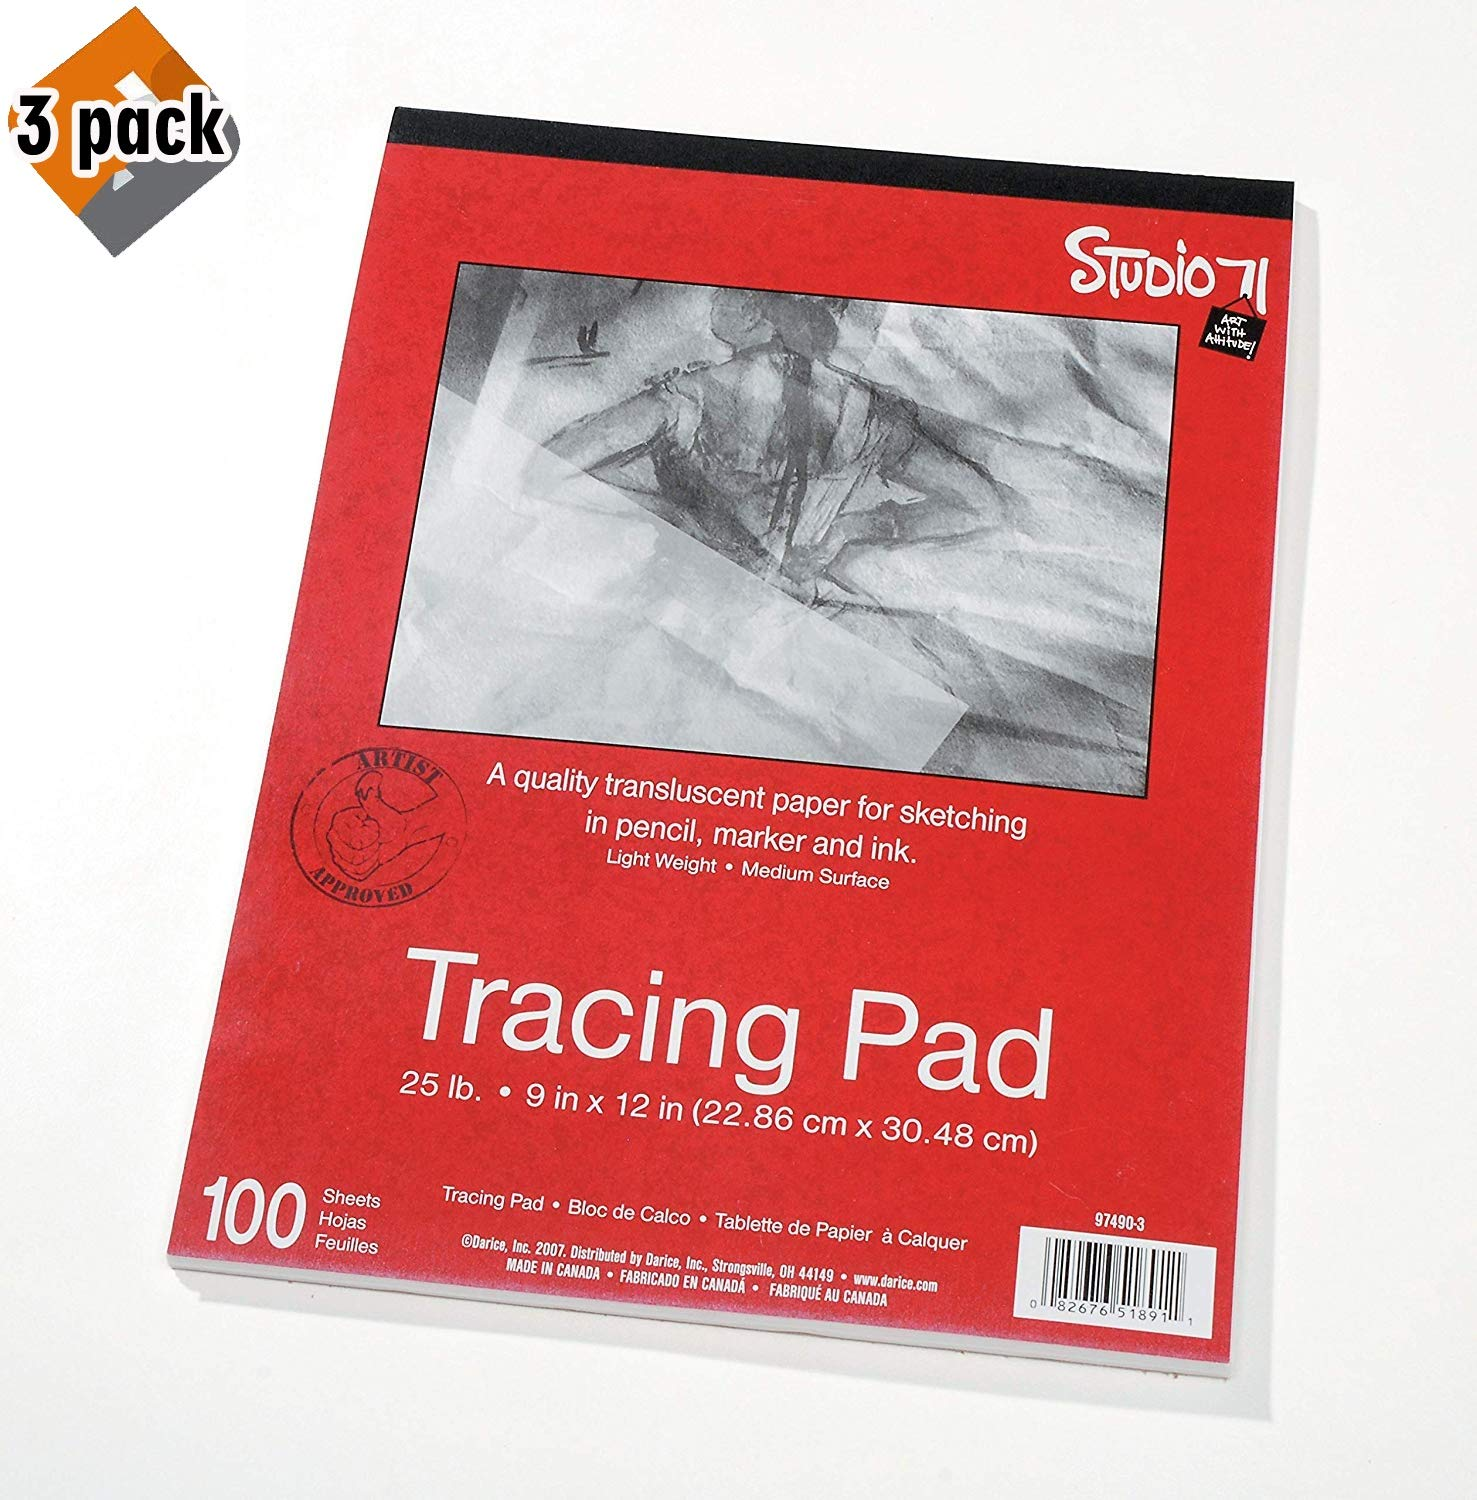 Darice 9''x12'' Artist's Tracing Paper, 100 Sheets - Translucent Tracing Paper for Pencil, Marker and Ink, Lightweight, Medium Surface (97490-3) - 3-Pack by Darice